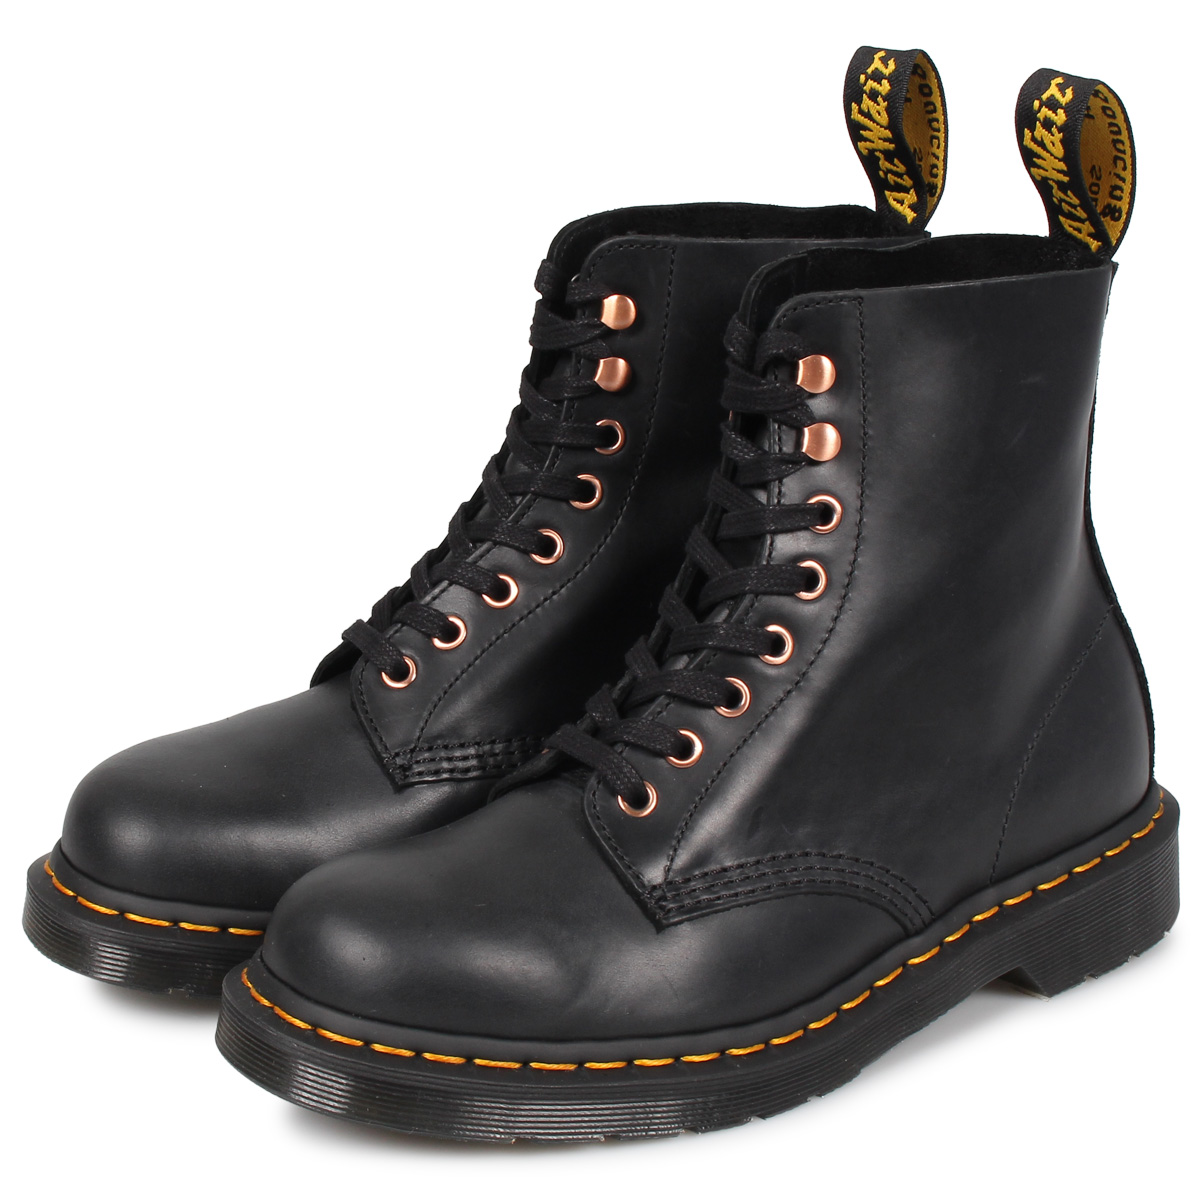 Dr.Martens 1460 PASCAL 8EYE BOOT doctor Martin 8 hall boots men gap Dis black black R25359001